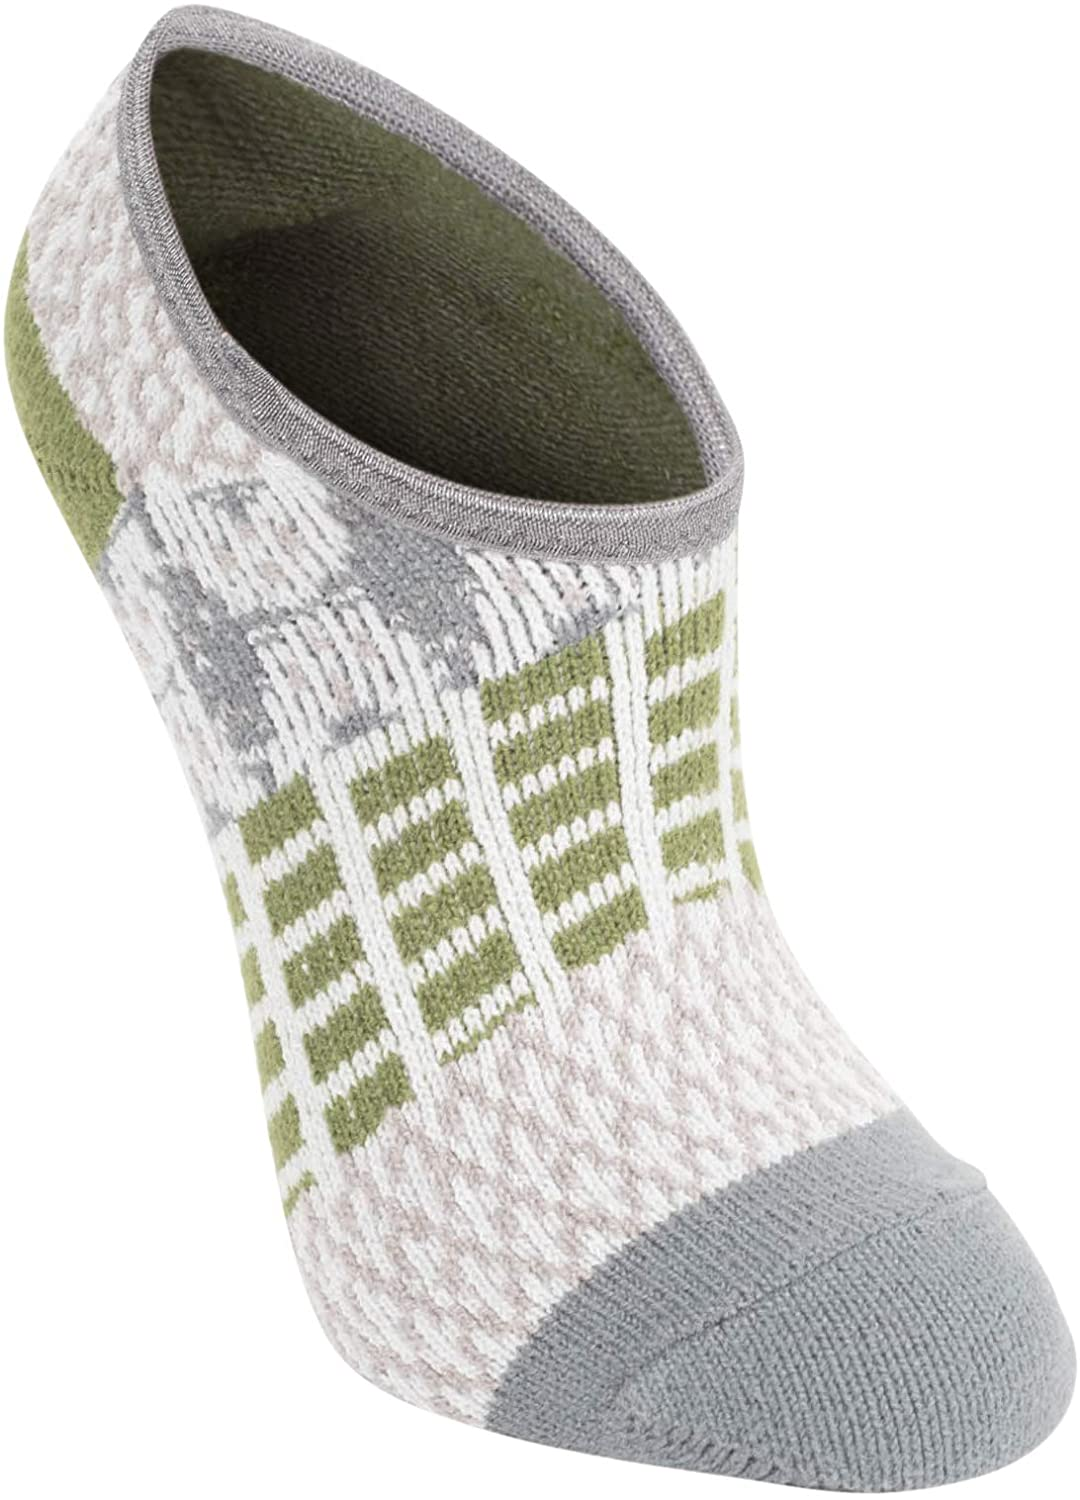 World's Softest Women's One Size Earthy Color Block Gallery Knit No-Show Footsie Socks